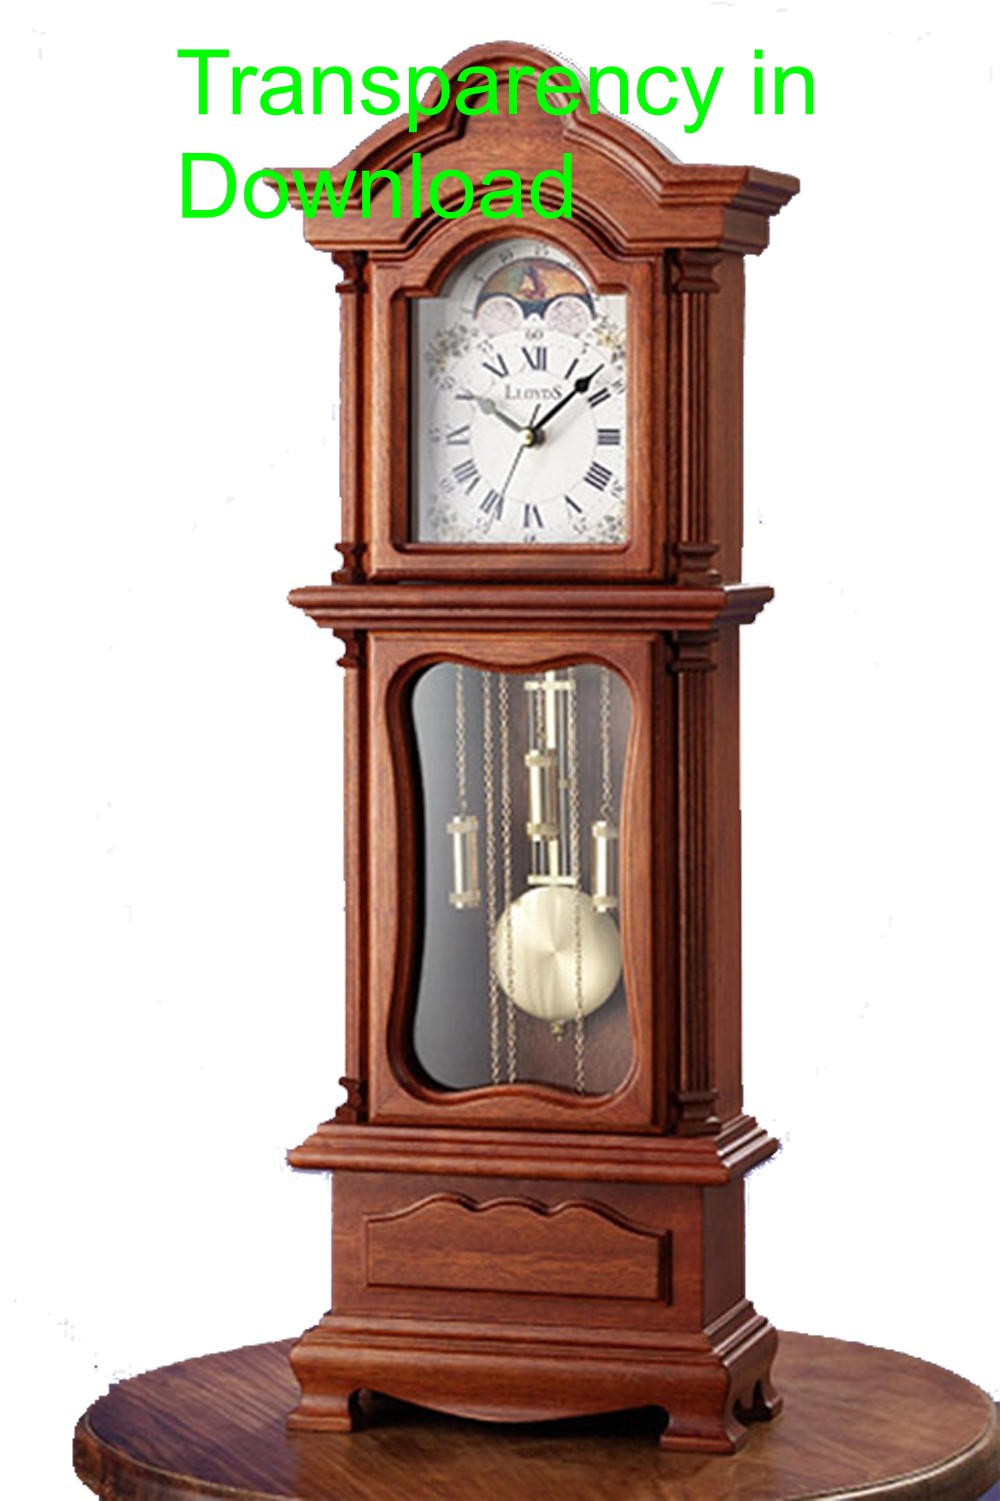 Grandfather clock 4 by BrokenFeline-Stock